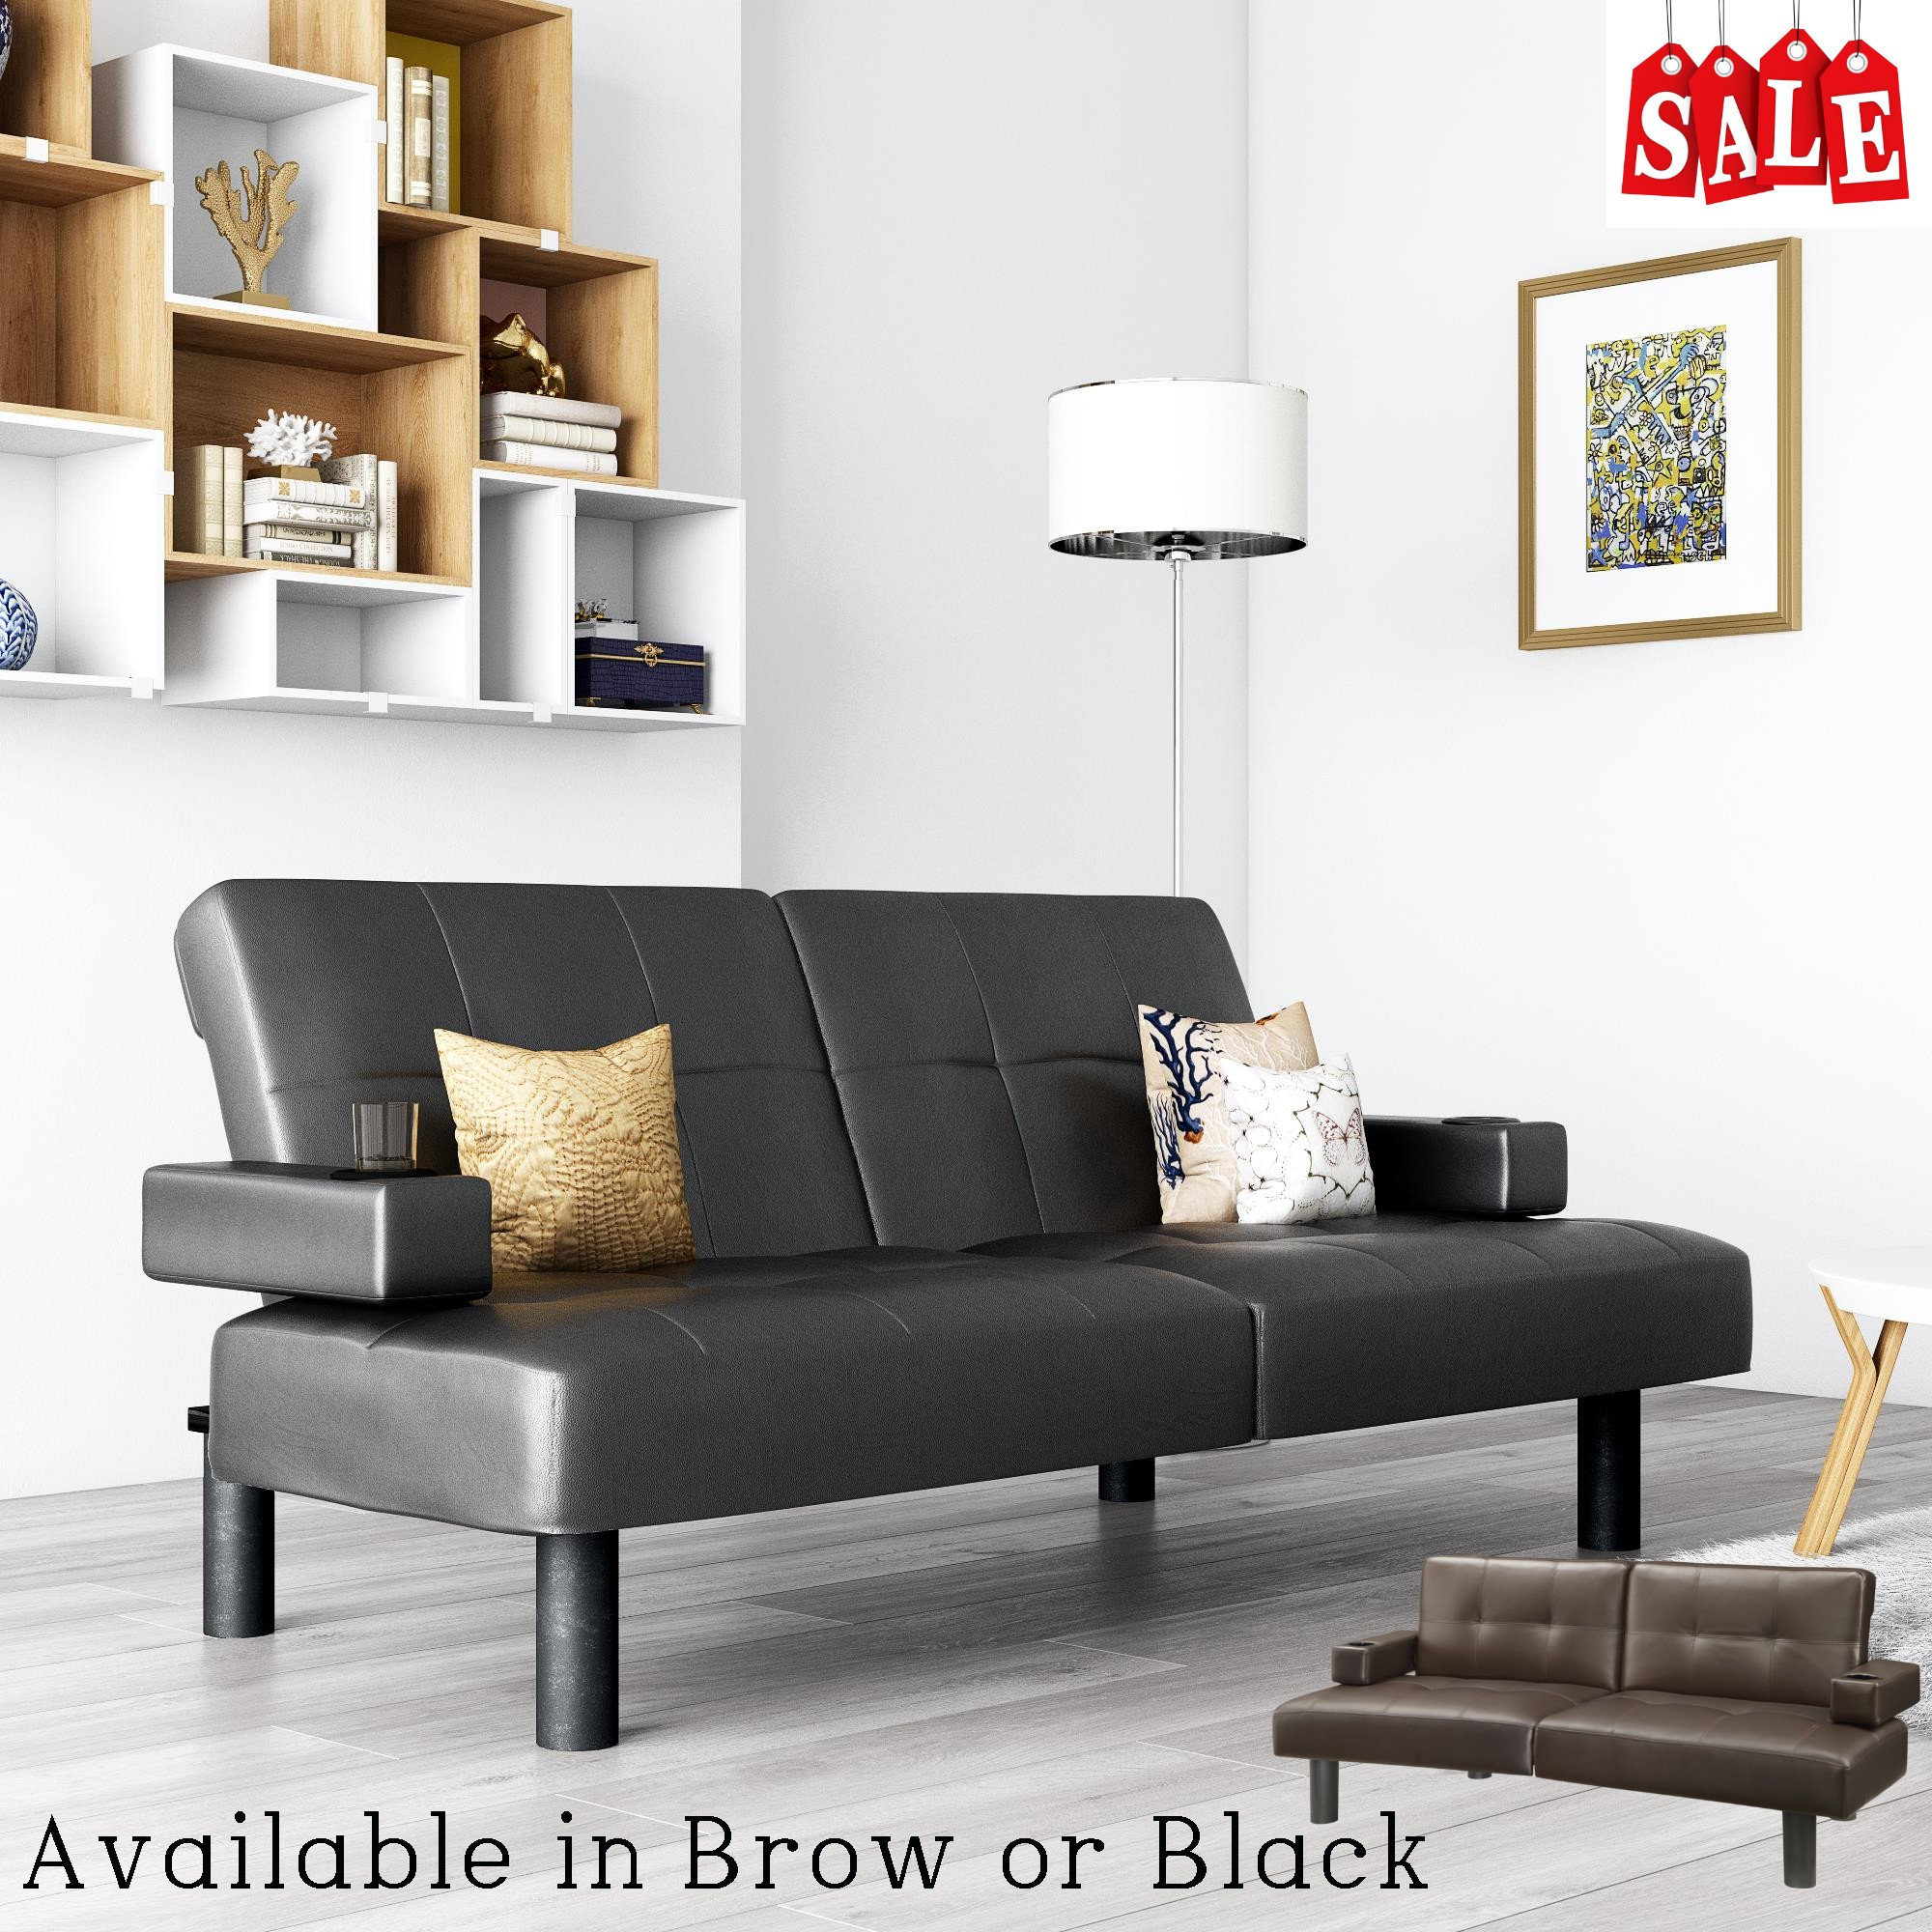 Details About Convertible Faux Leather Futon Sofa Bed Sleeper W Cup Holder Black Brown Tufted